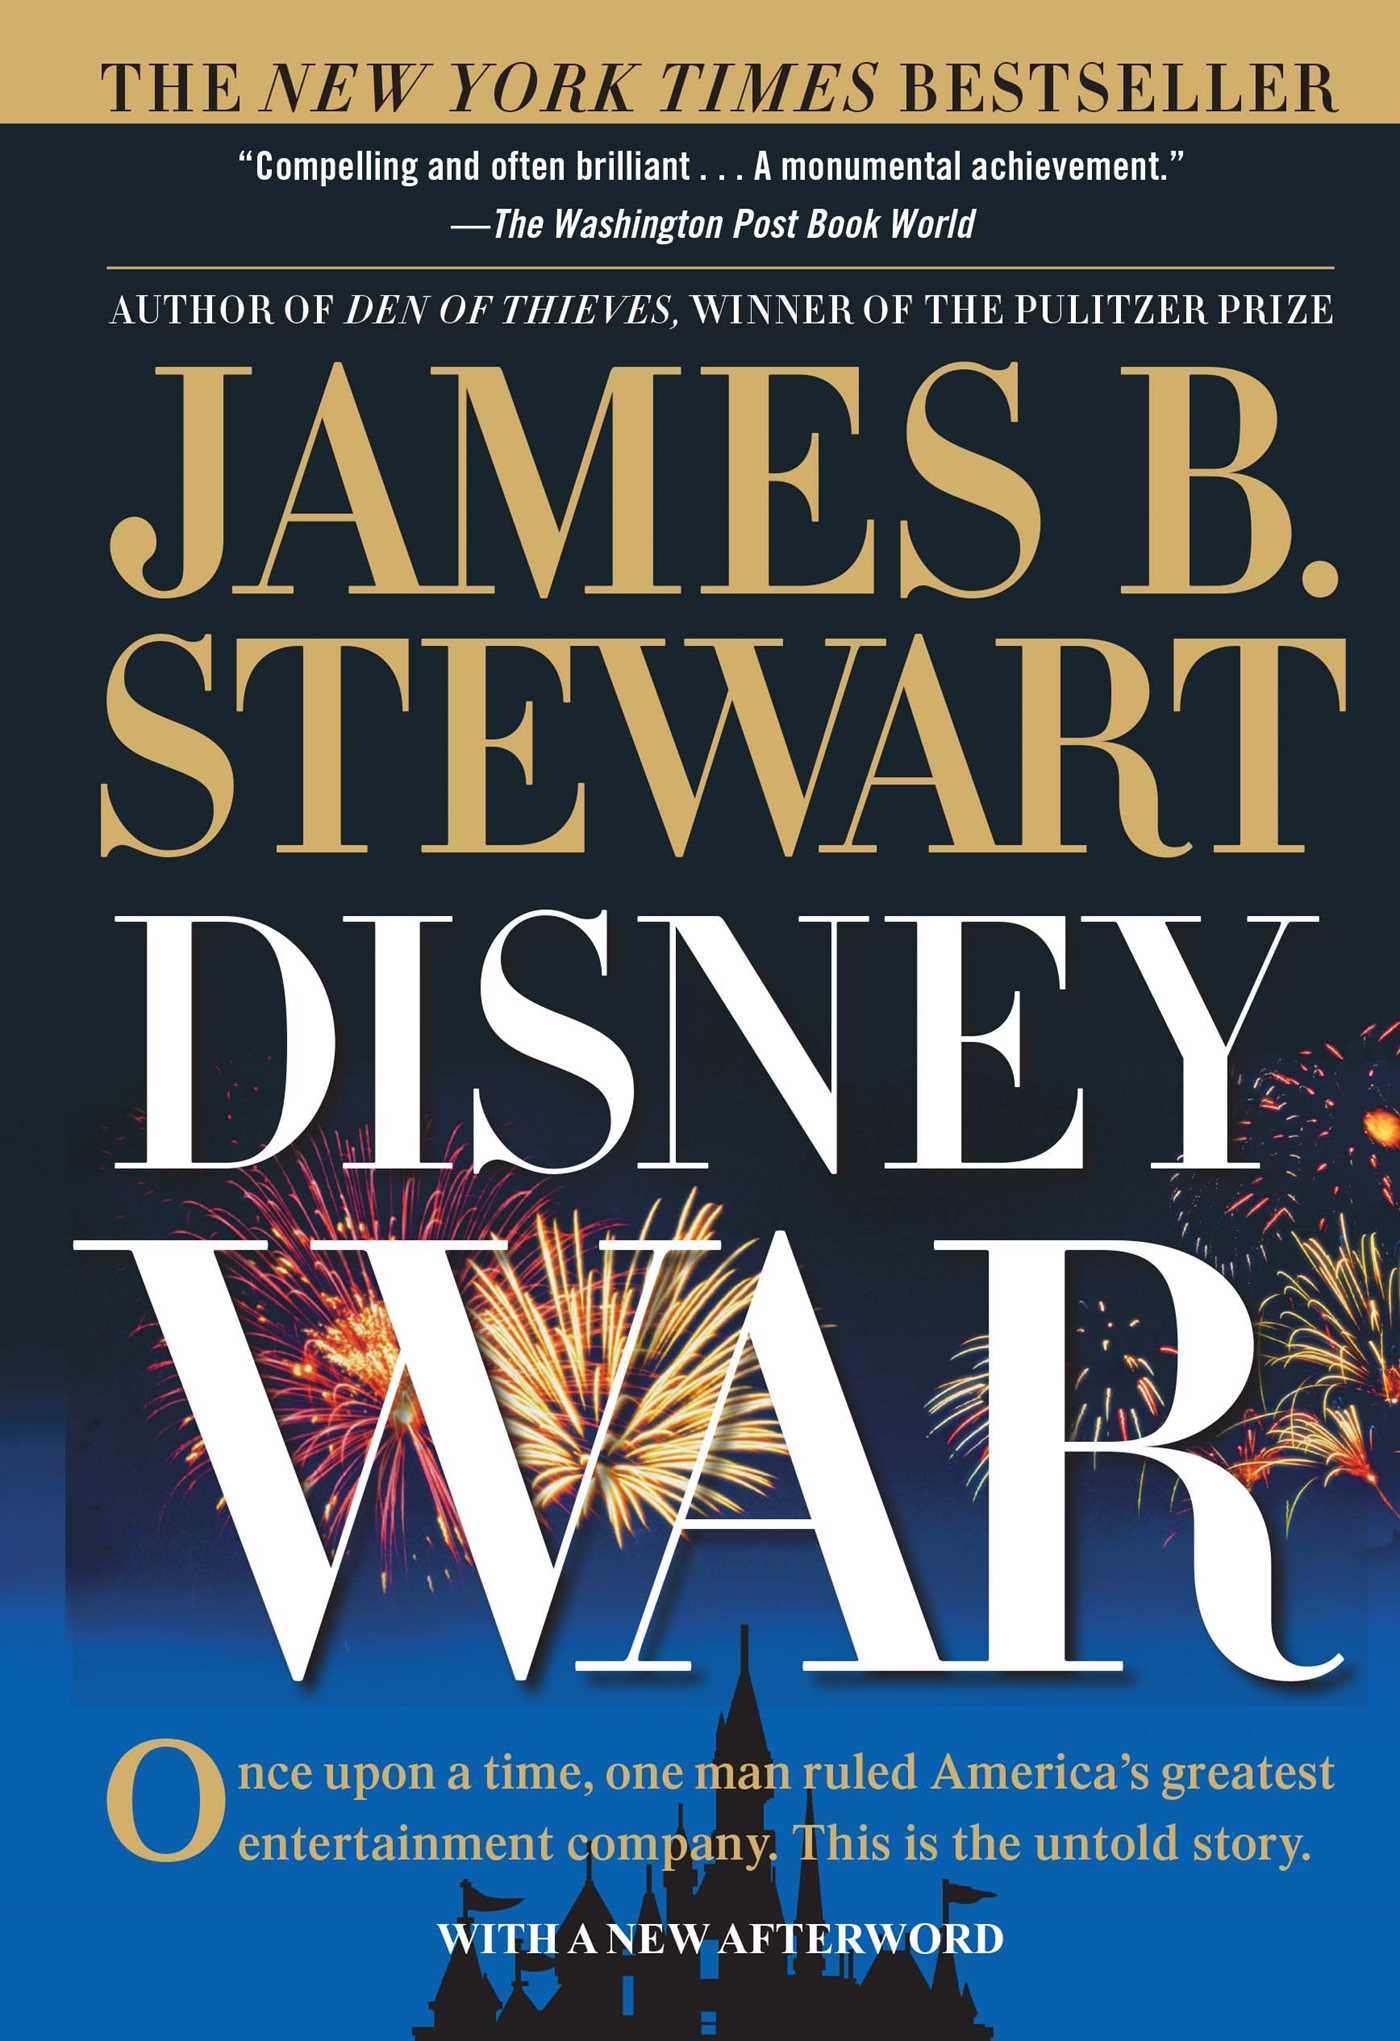 Disneywar-9780743267090_hr